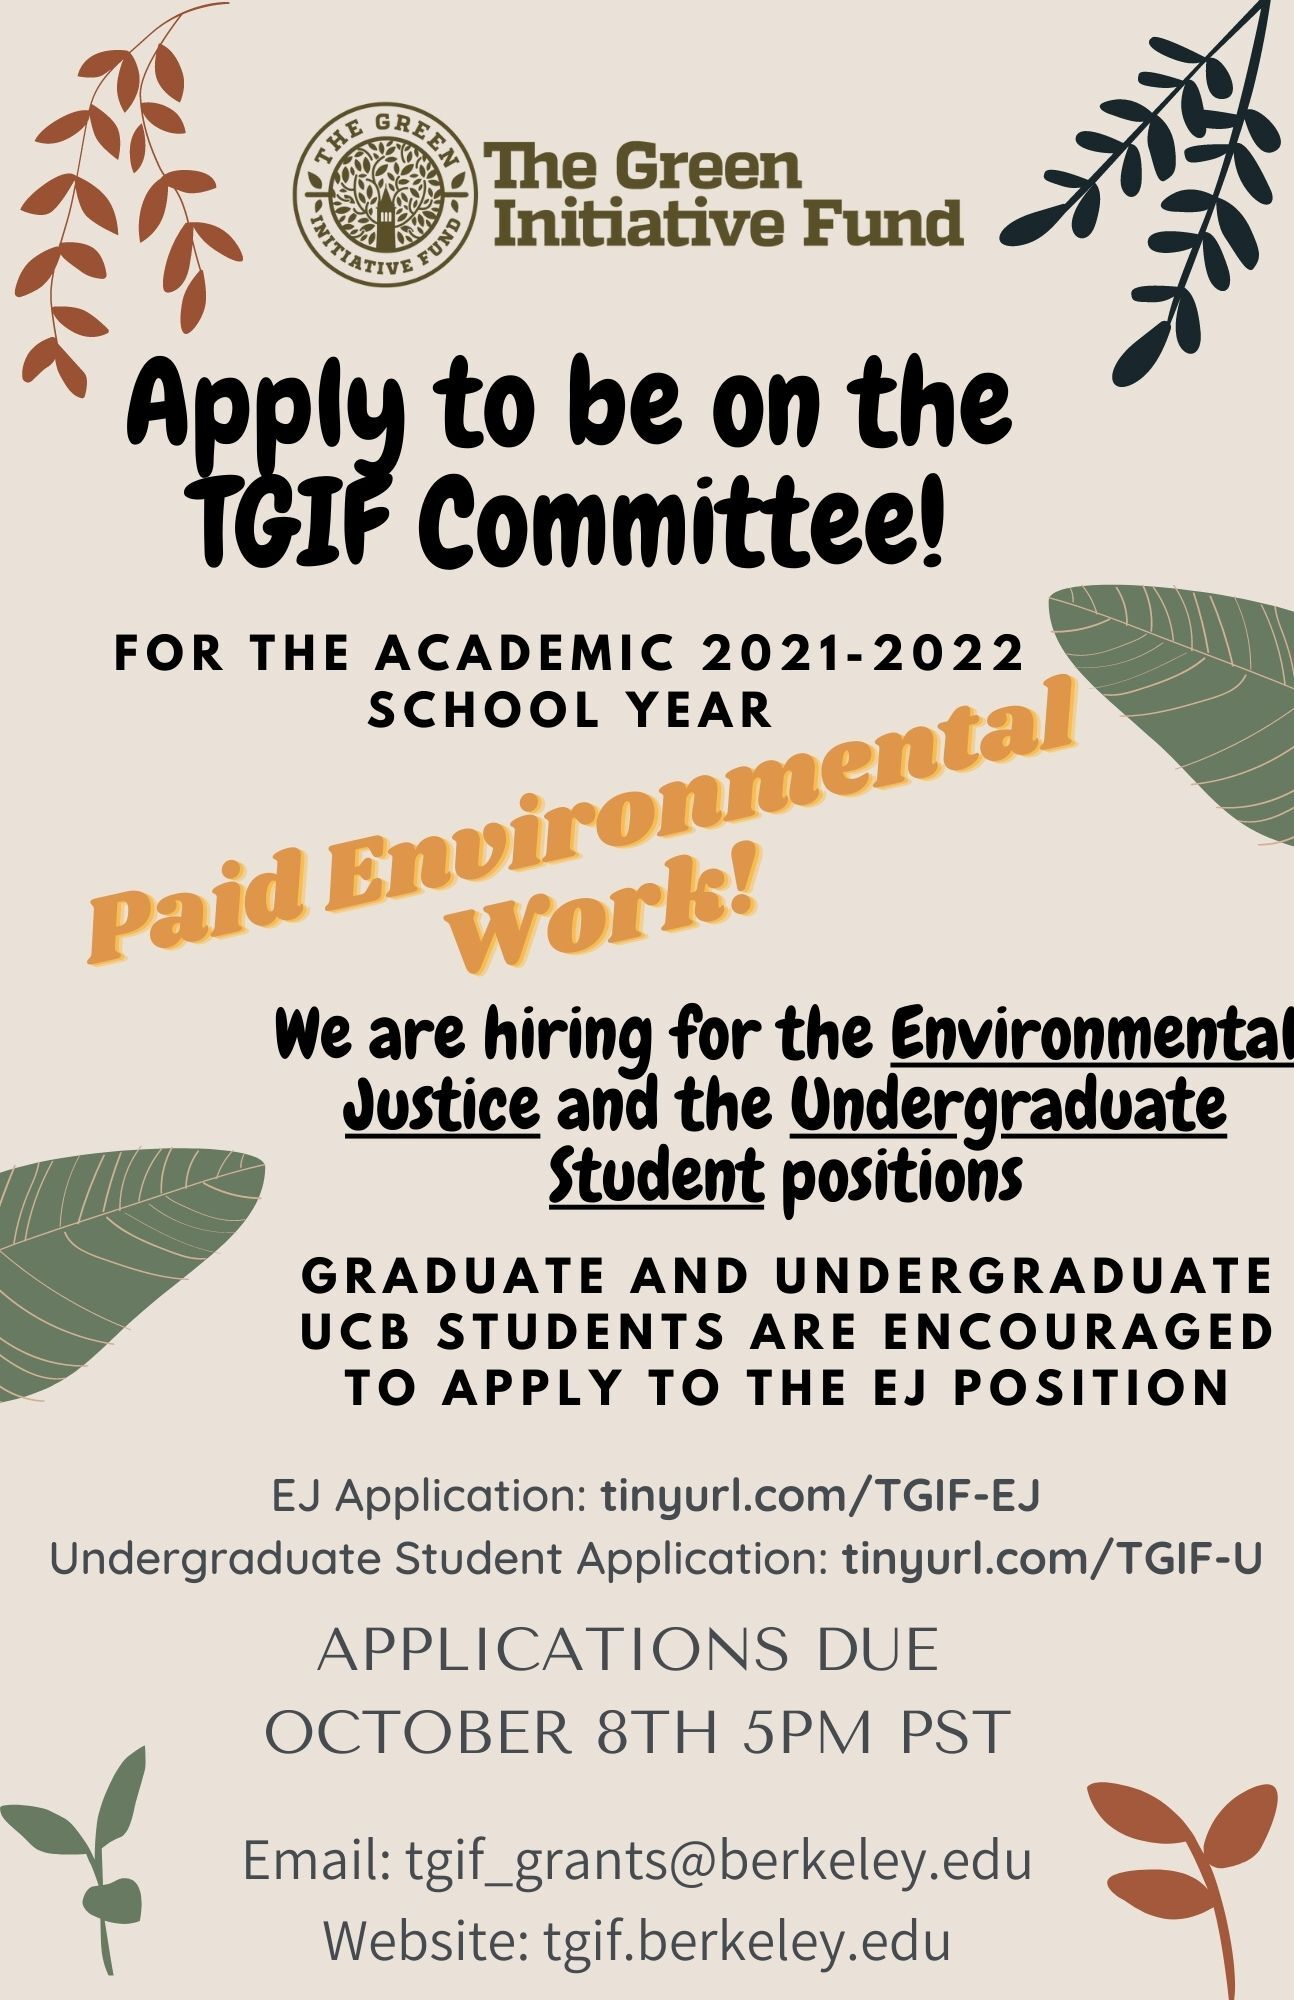 Flyer with information on the TGIF Committee Applications, also provided in plain text nearby.